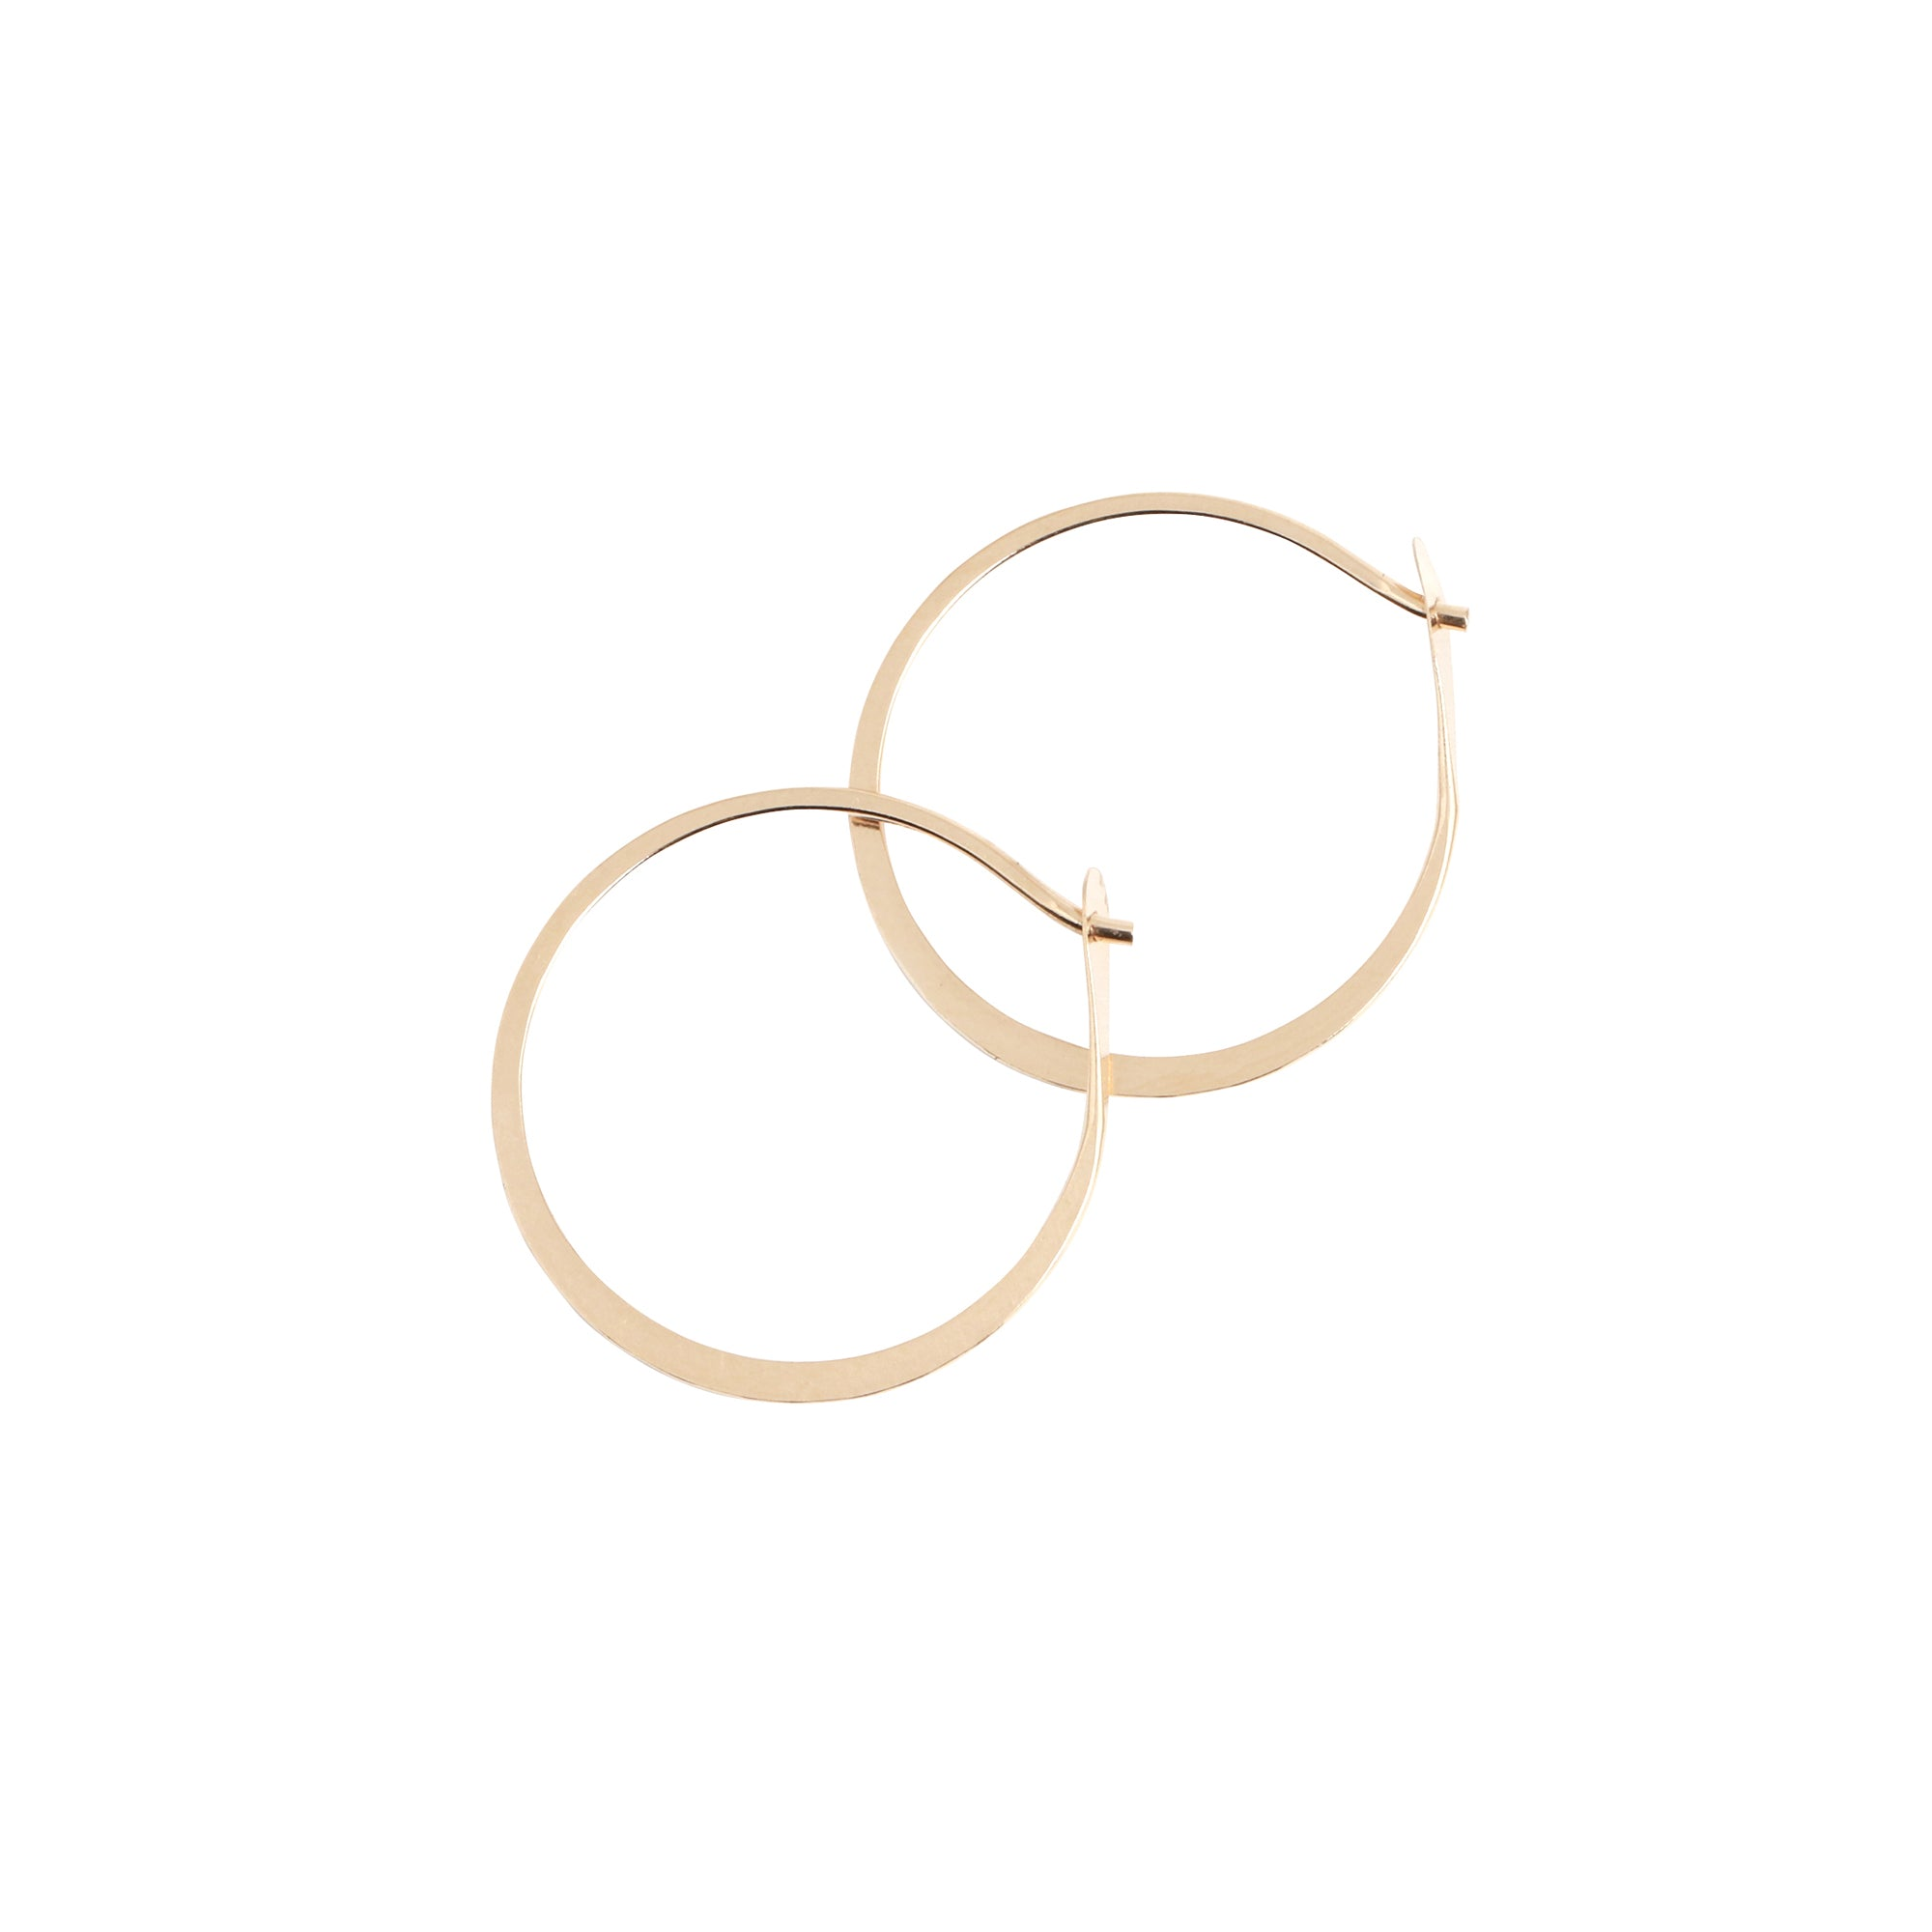 Melissa Joy Manning Round Hoops - Gold (M) - Earrings - Broken English Jewelry